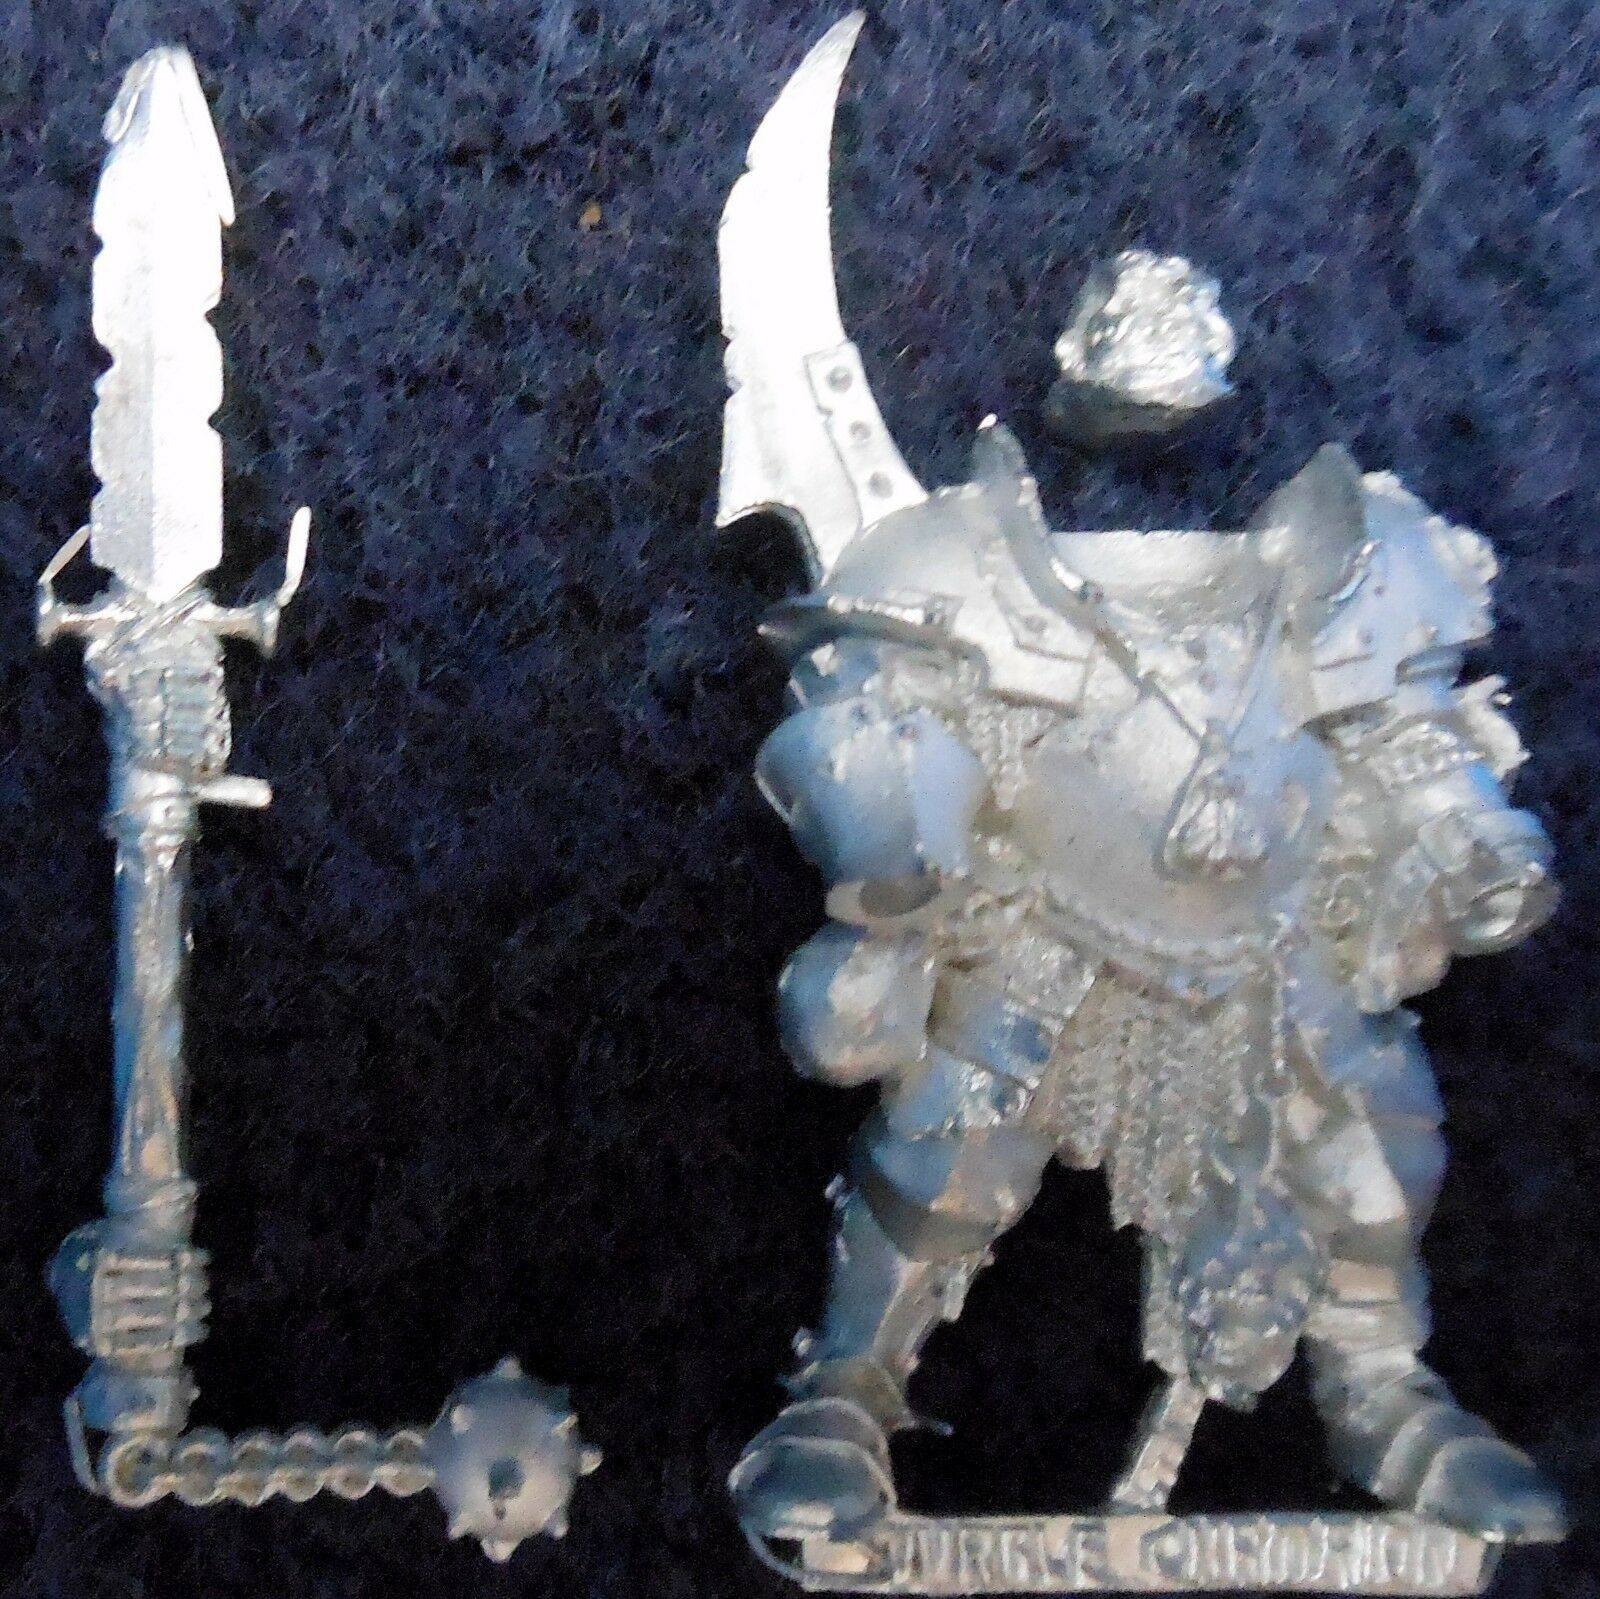 2002 Chaos Champion of Nurgle Citadel Warhammer Army Hordes Evil Fighter Lord GW